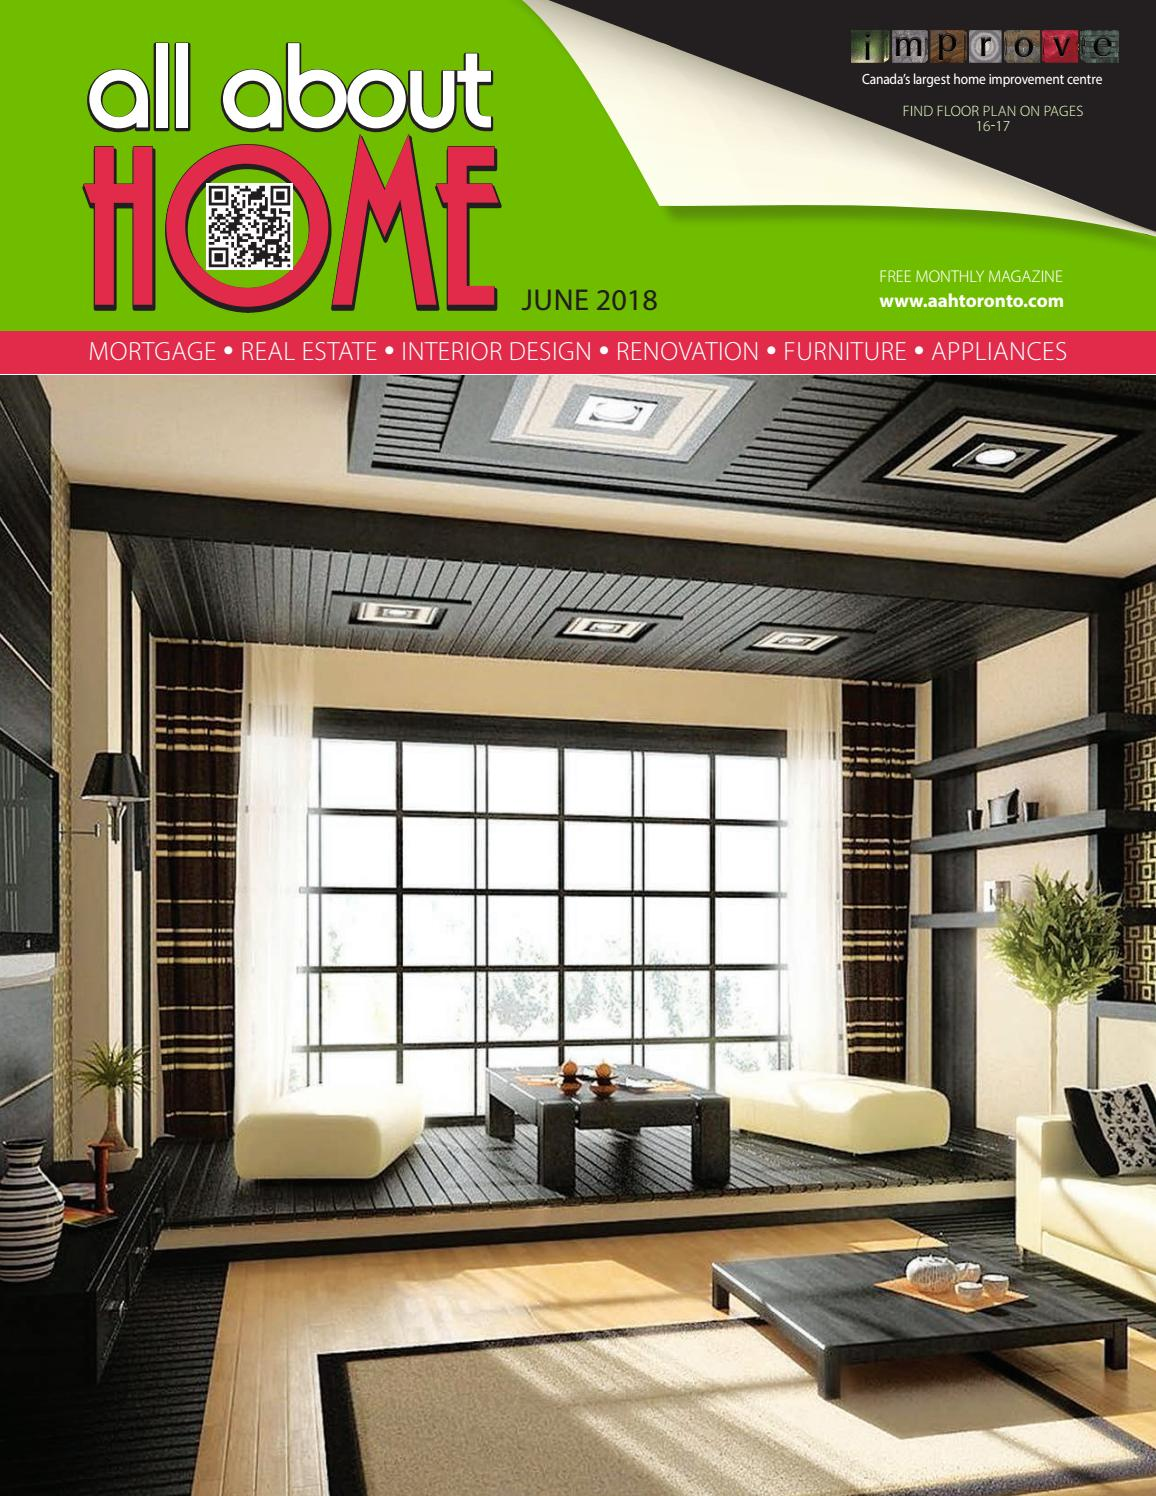 All About Home June 2018 En By All About Home Magazine Issuu